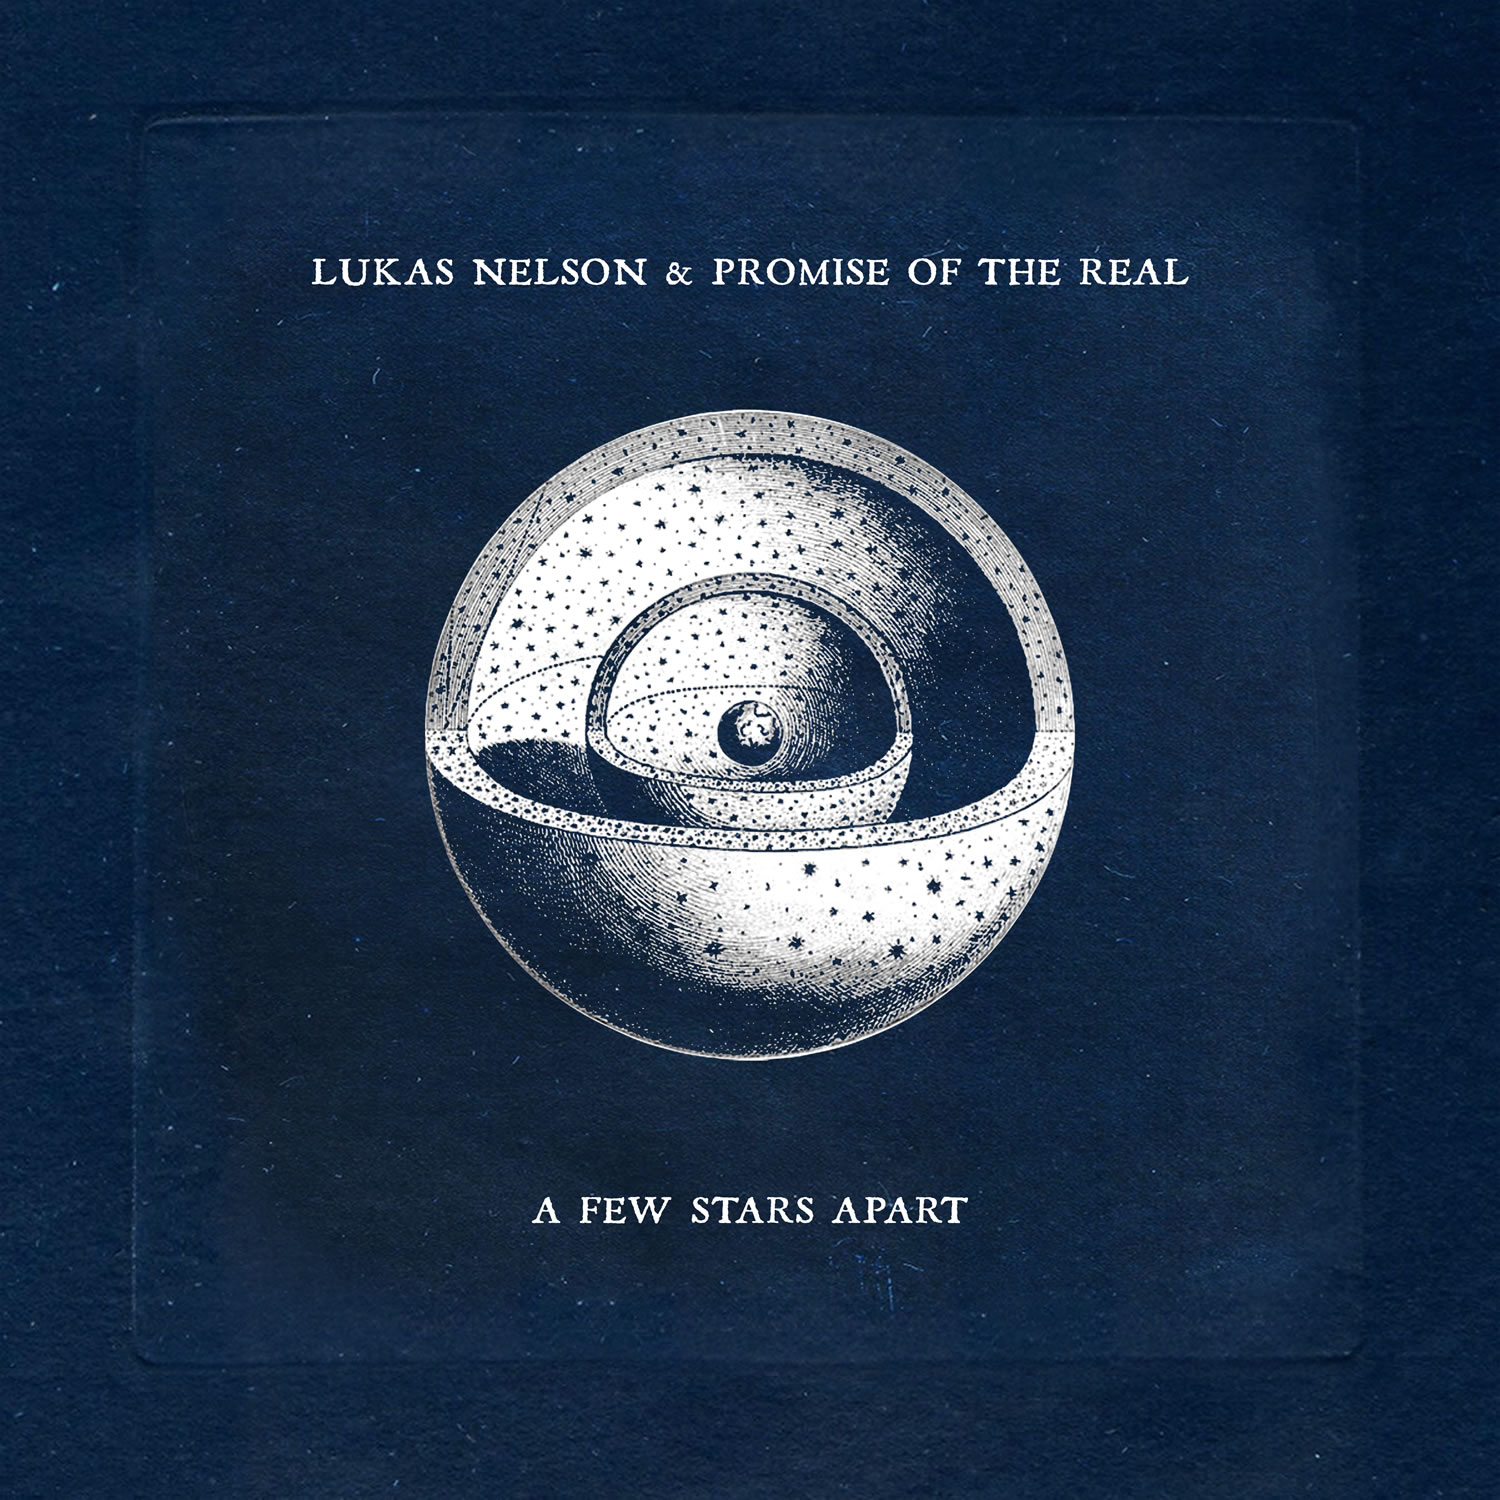 Lukas Nelson and Promise of the Real - A Few Stars Apart